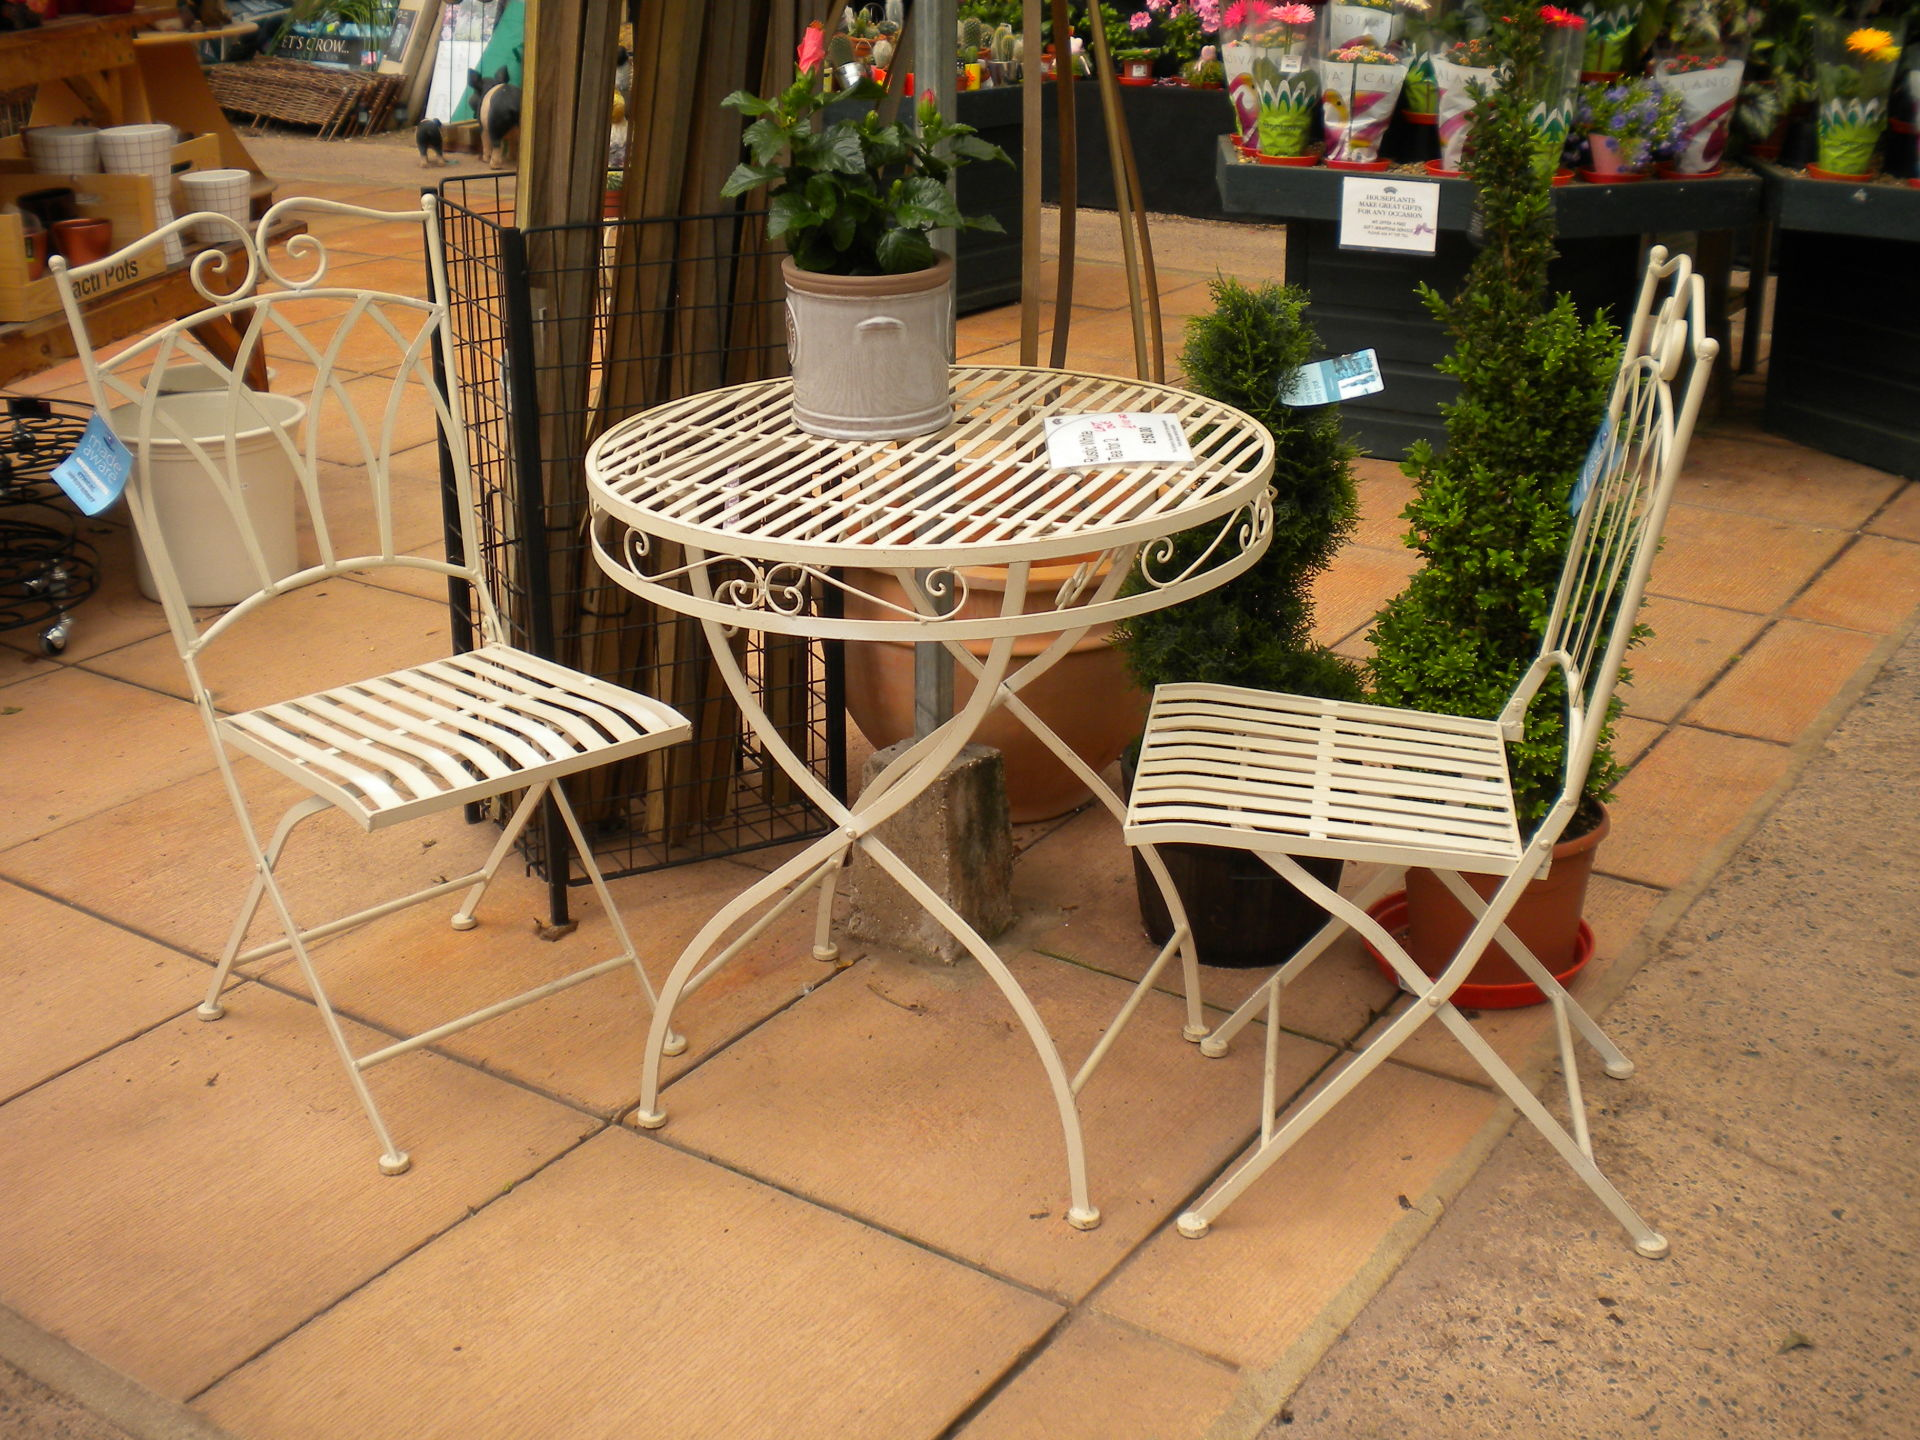 Rustic White Bistro Set - LAST ONE - WAS £150 - NOW £110